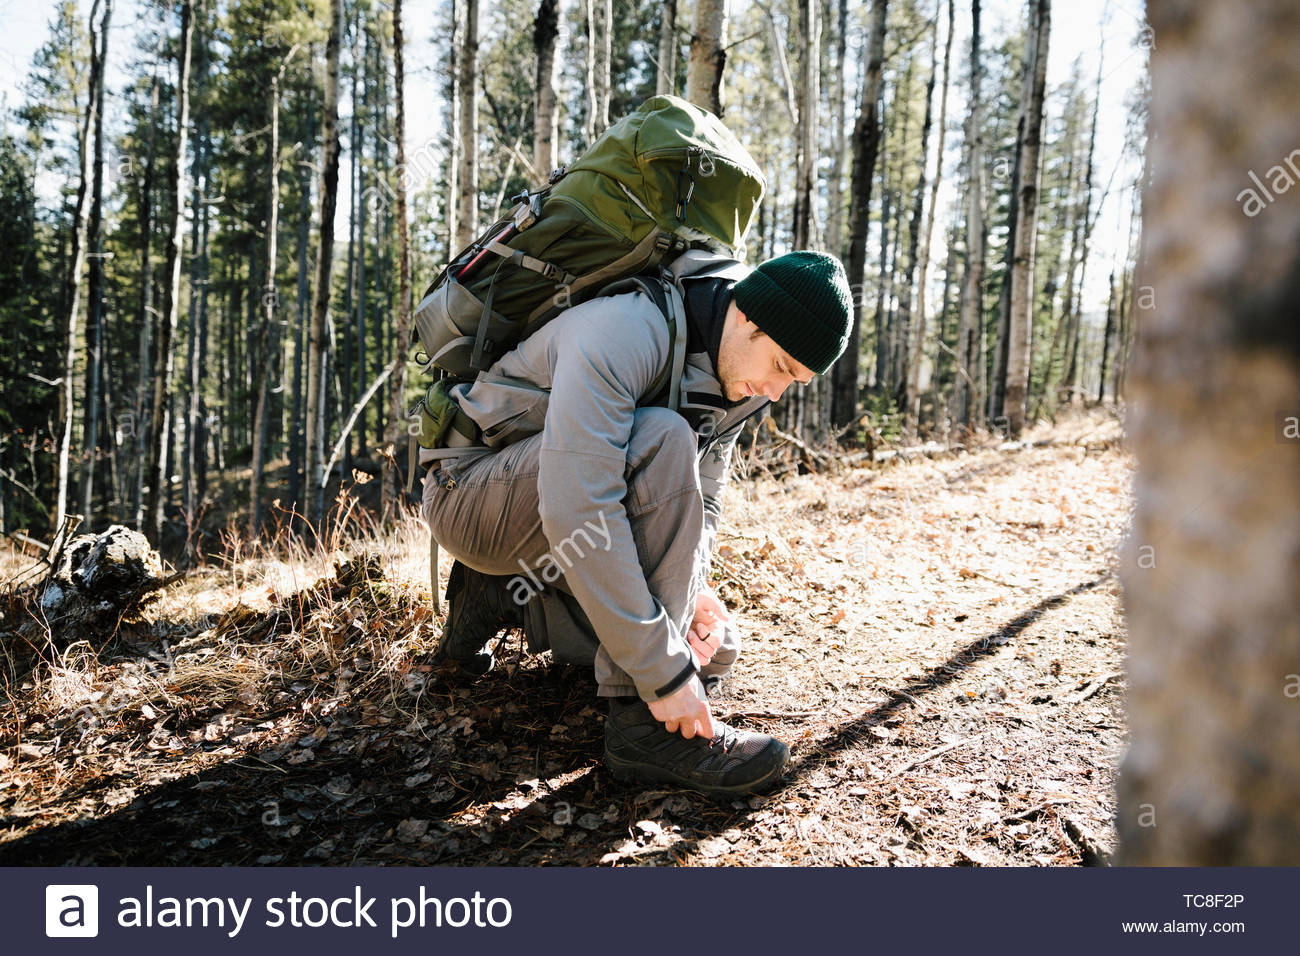 Man with backpack hiking, tying shoe in sunny woods - Stock Image